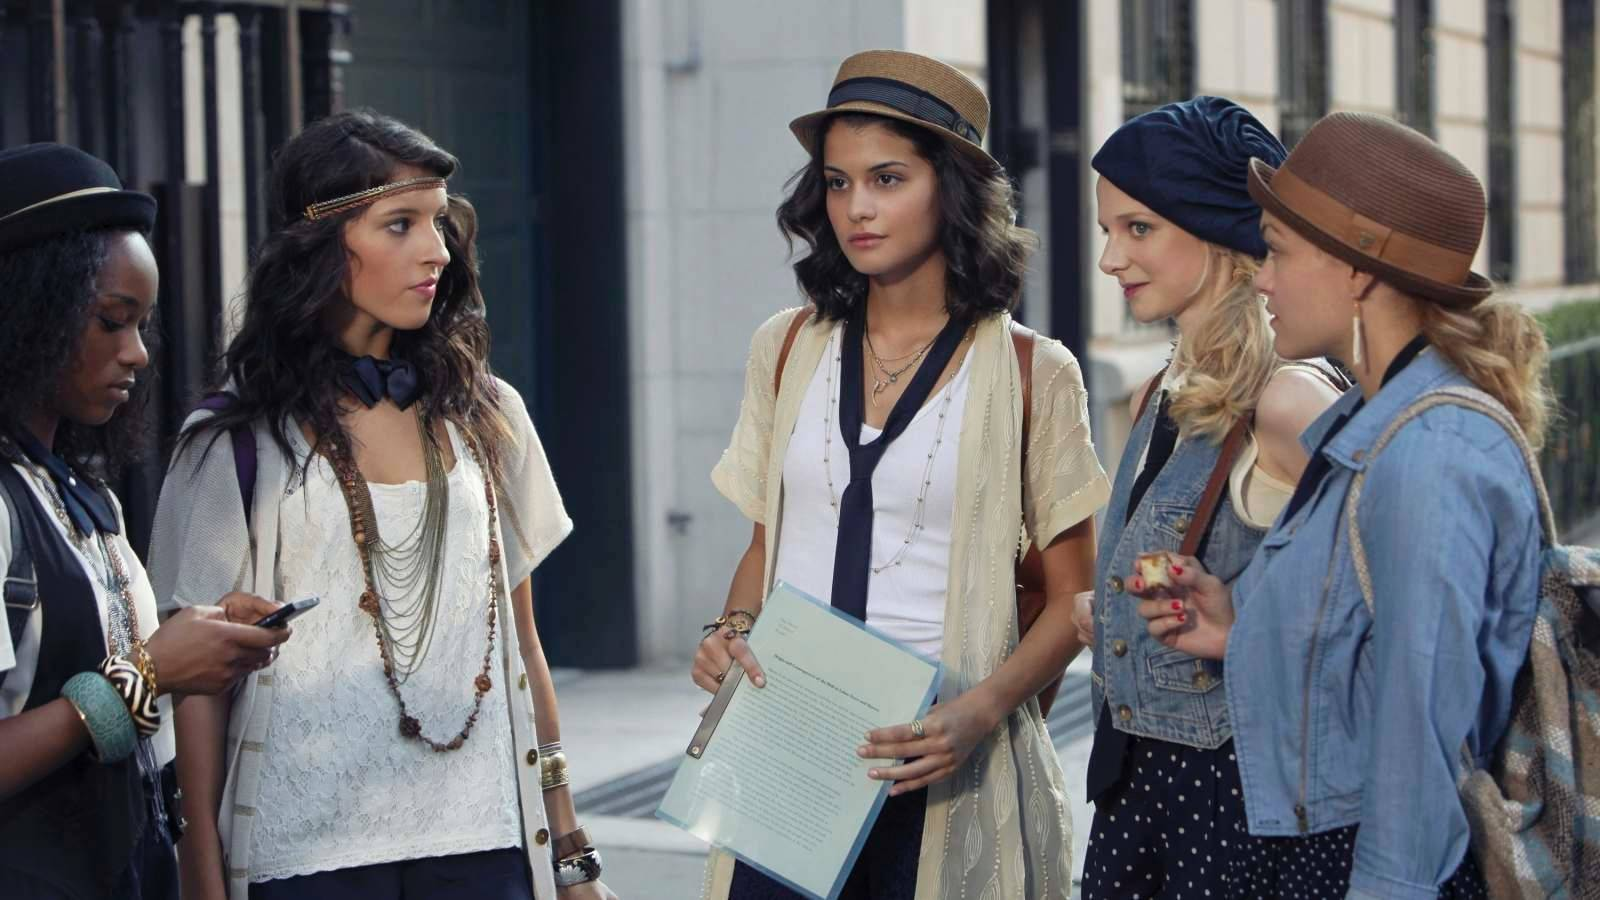 Clothes are the true stars of Gossip Girl reboot